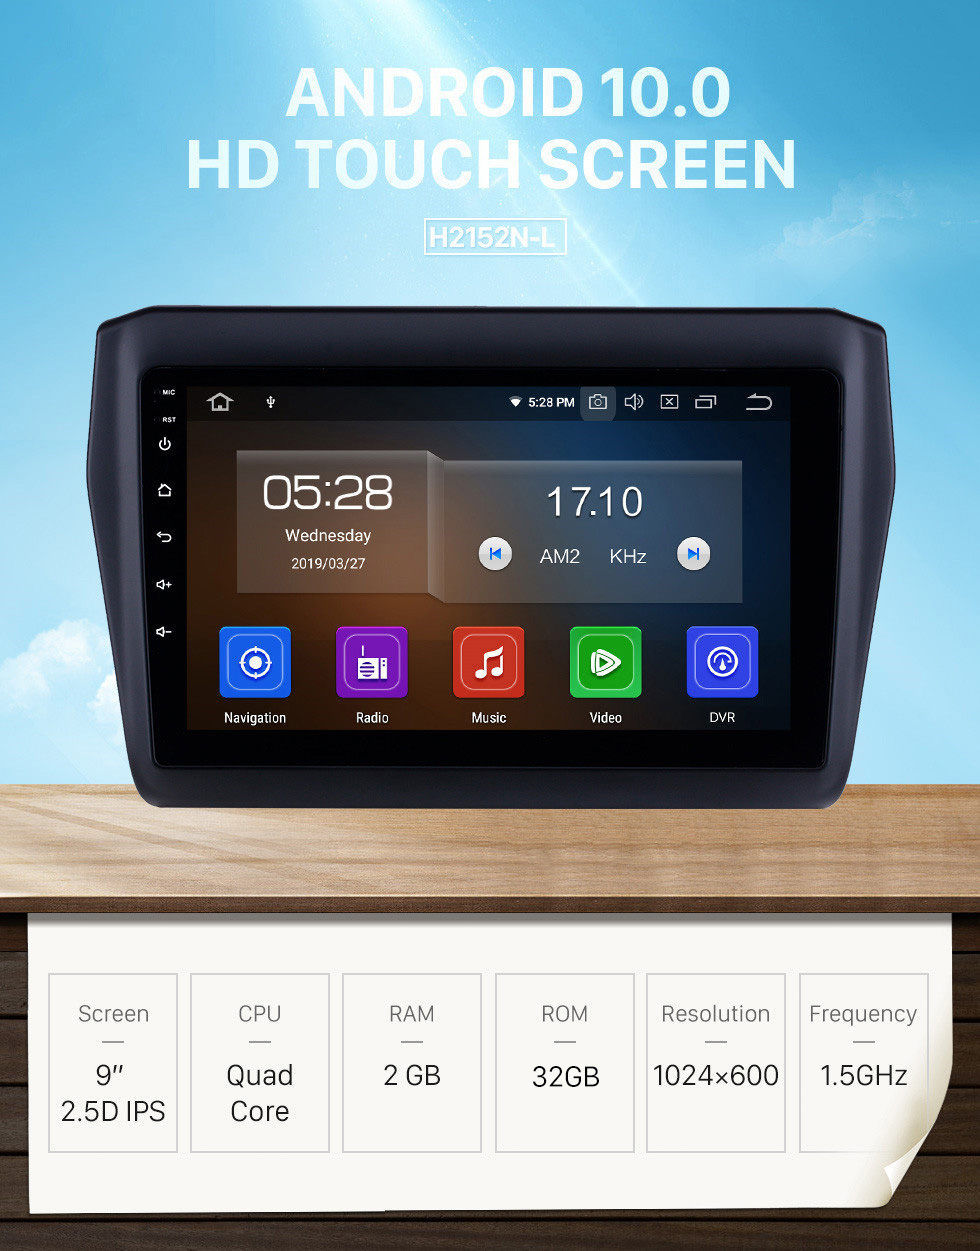 Seicane 9 inch touchscreen 2017-2019 SUZUKI Swift Android 10.0 Car Radio GPS Navigation Head unit Bluetooth  music USB support OBD Carplay Backup Camera 1080P DVD Player 4G Wifi